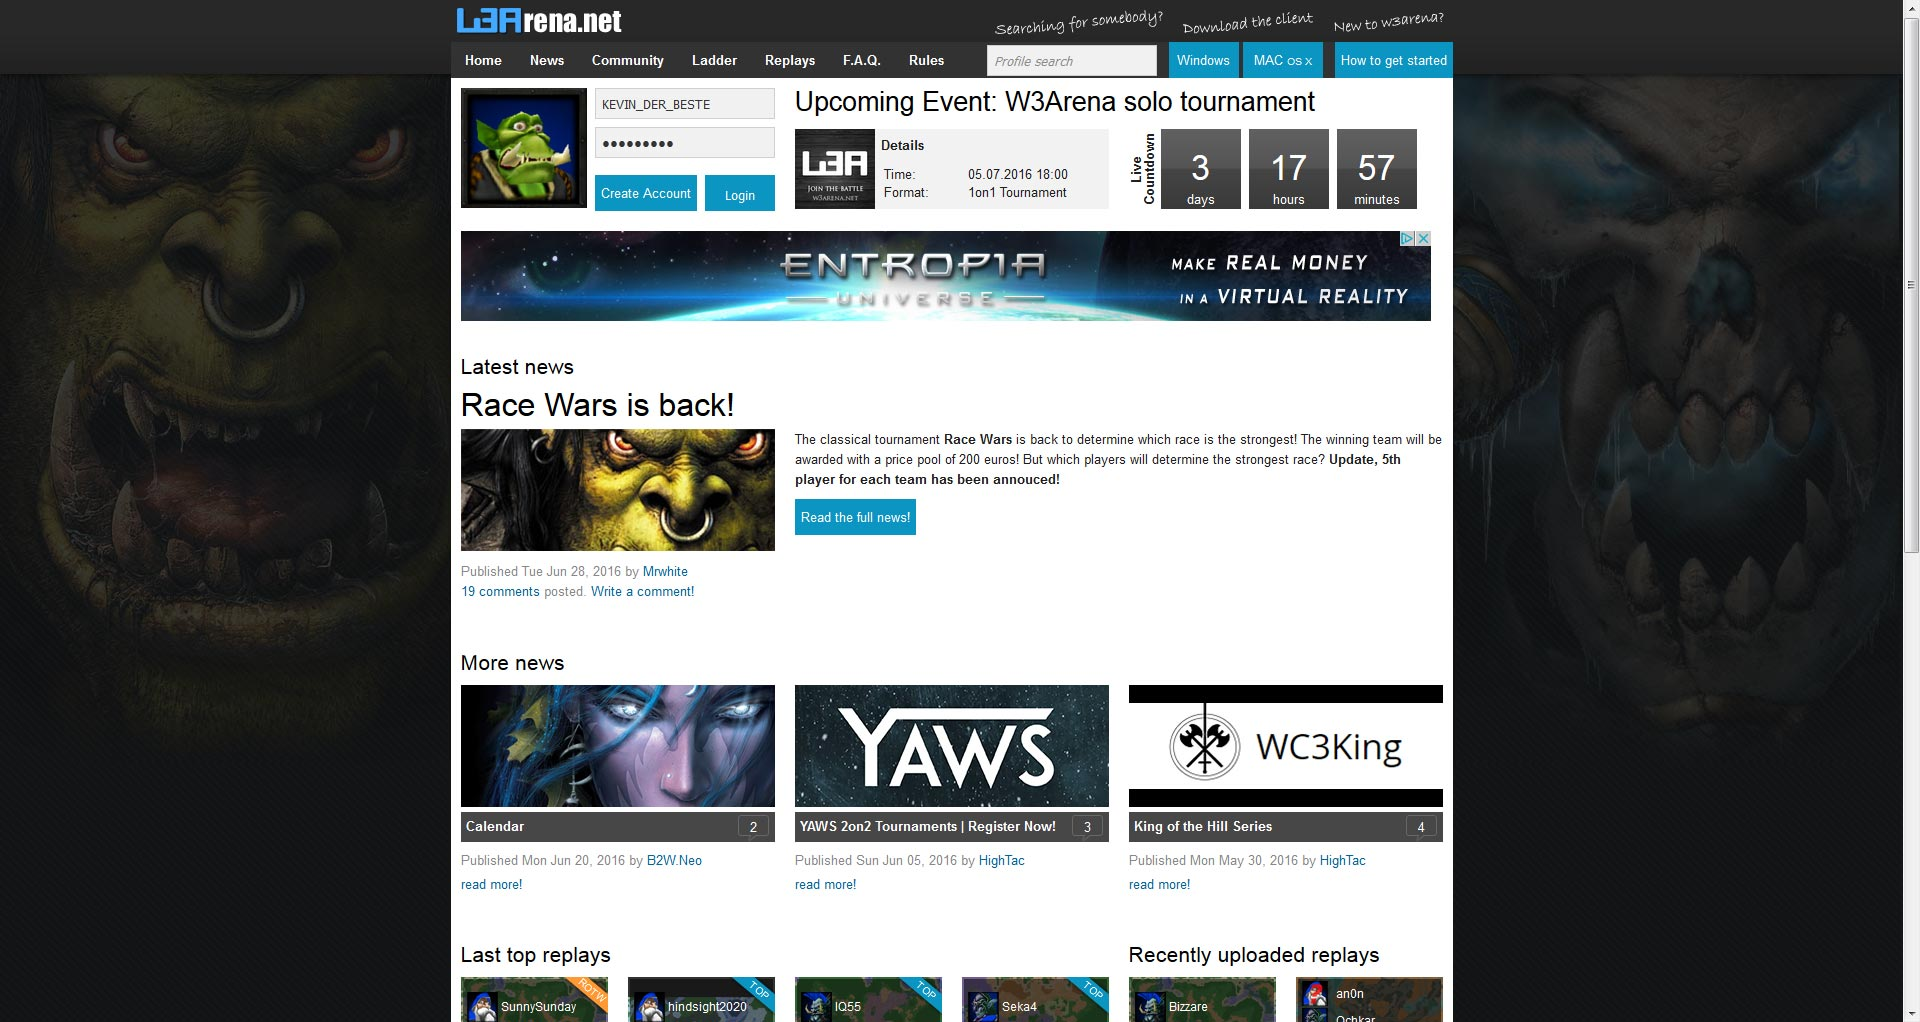 w3arena-homepage-warcraft-progamer-ladder